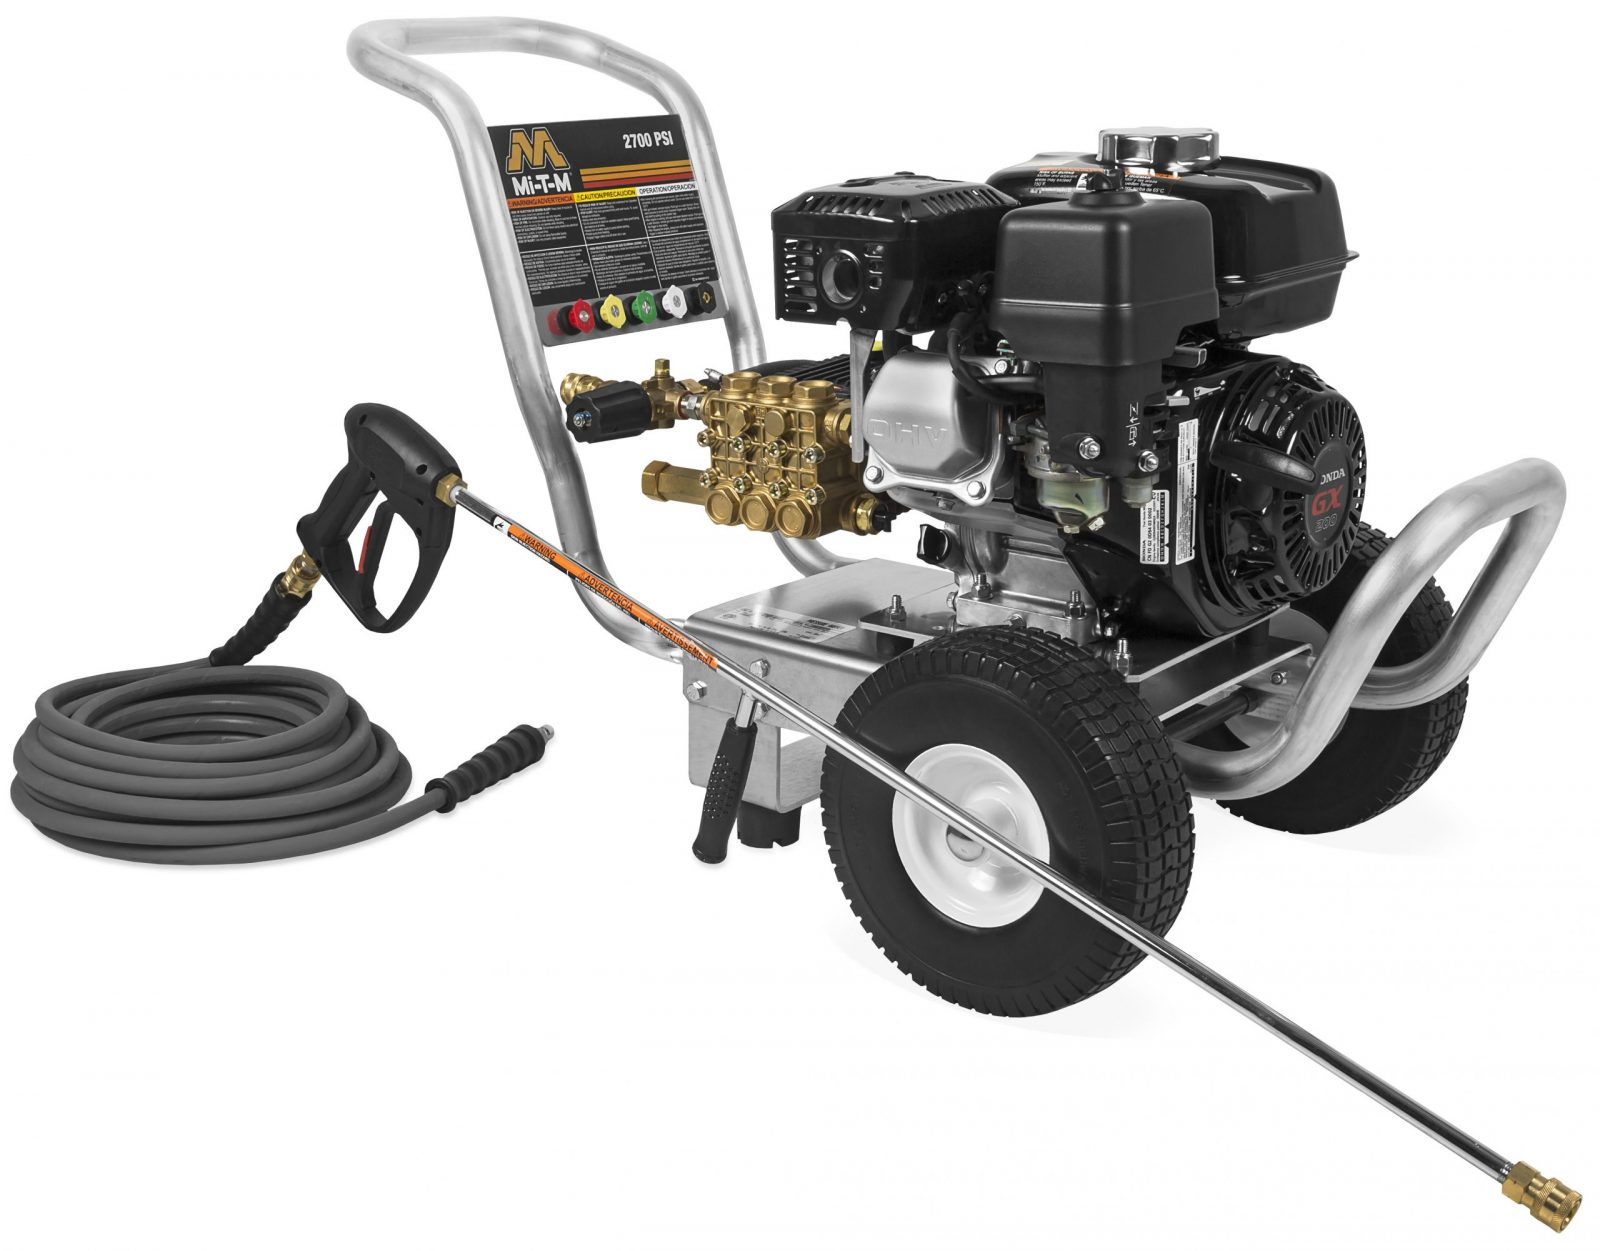 MiTM cold pressure washer